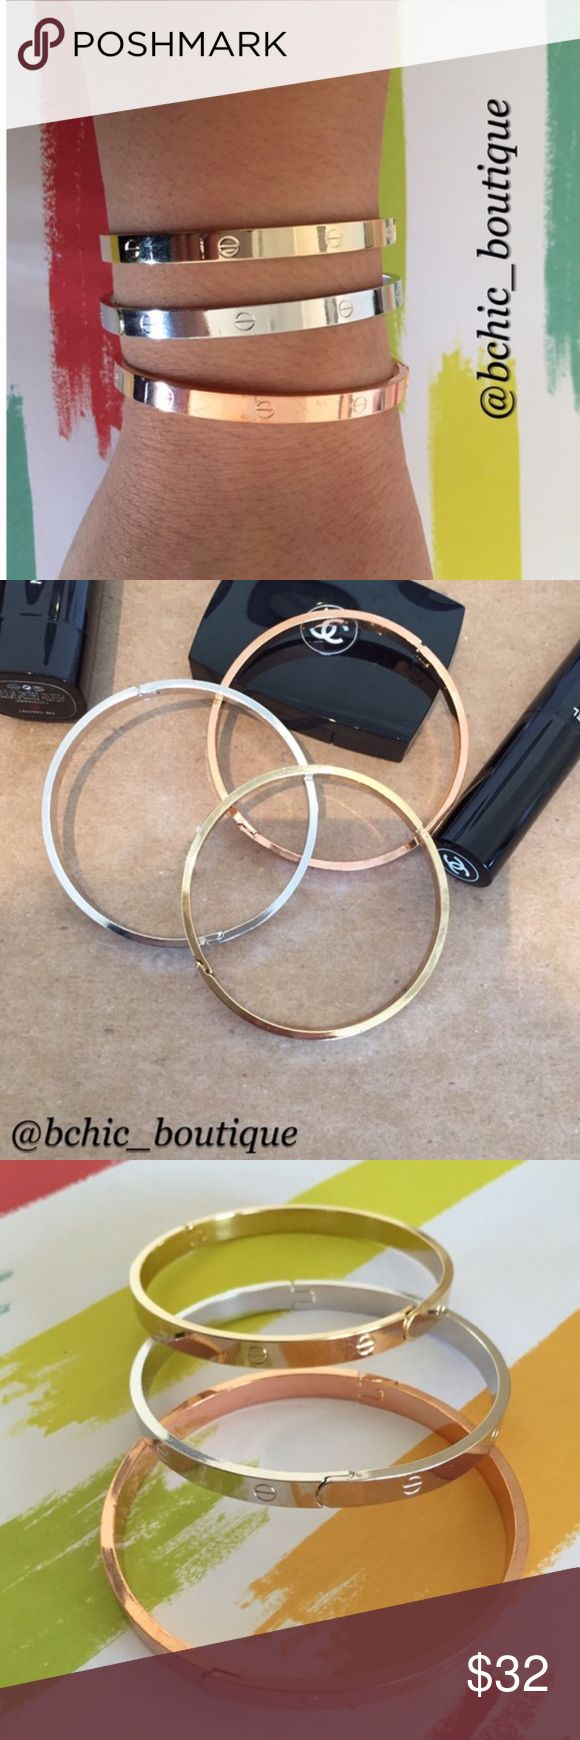 "3 Tone ""Love"" Bangle Bracelets 3 Tone ""love"" Bangle bracelets. Each set comes with 1 silver, 1 gold and 1 rose gold. Fits writs up to 8"". Bchic Jewelry Bracelets"